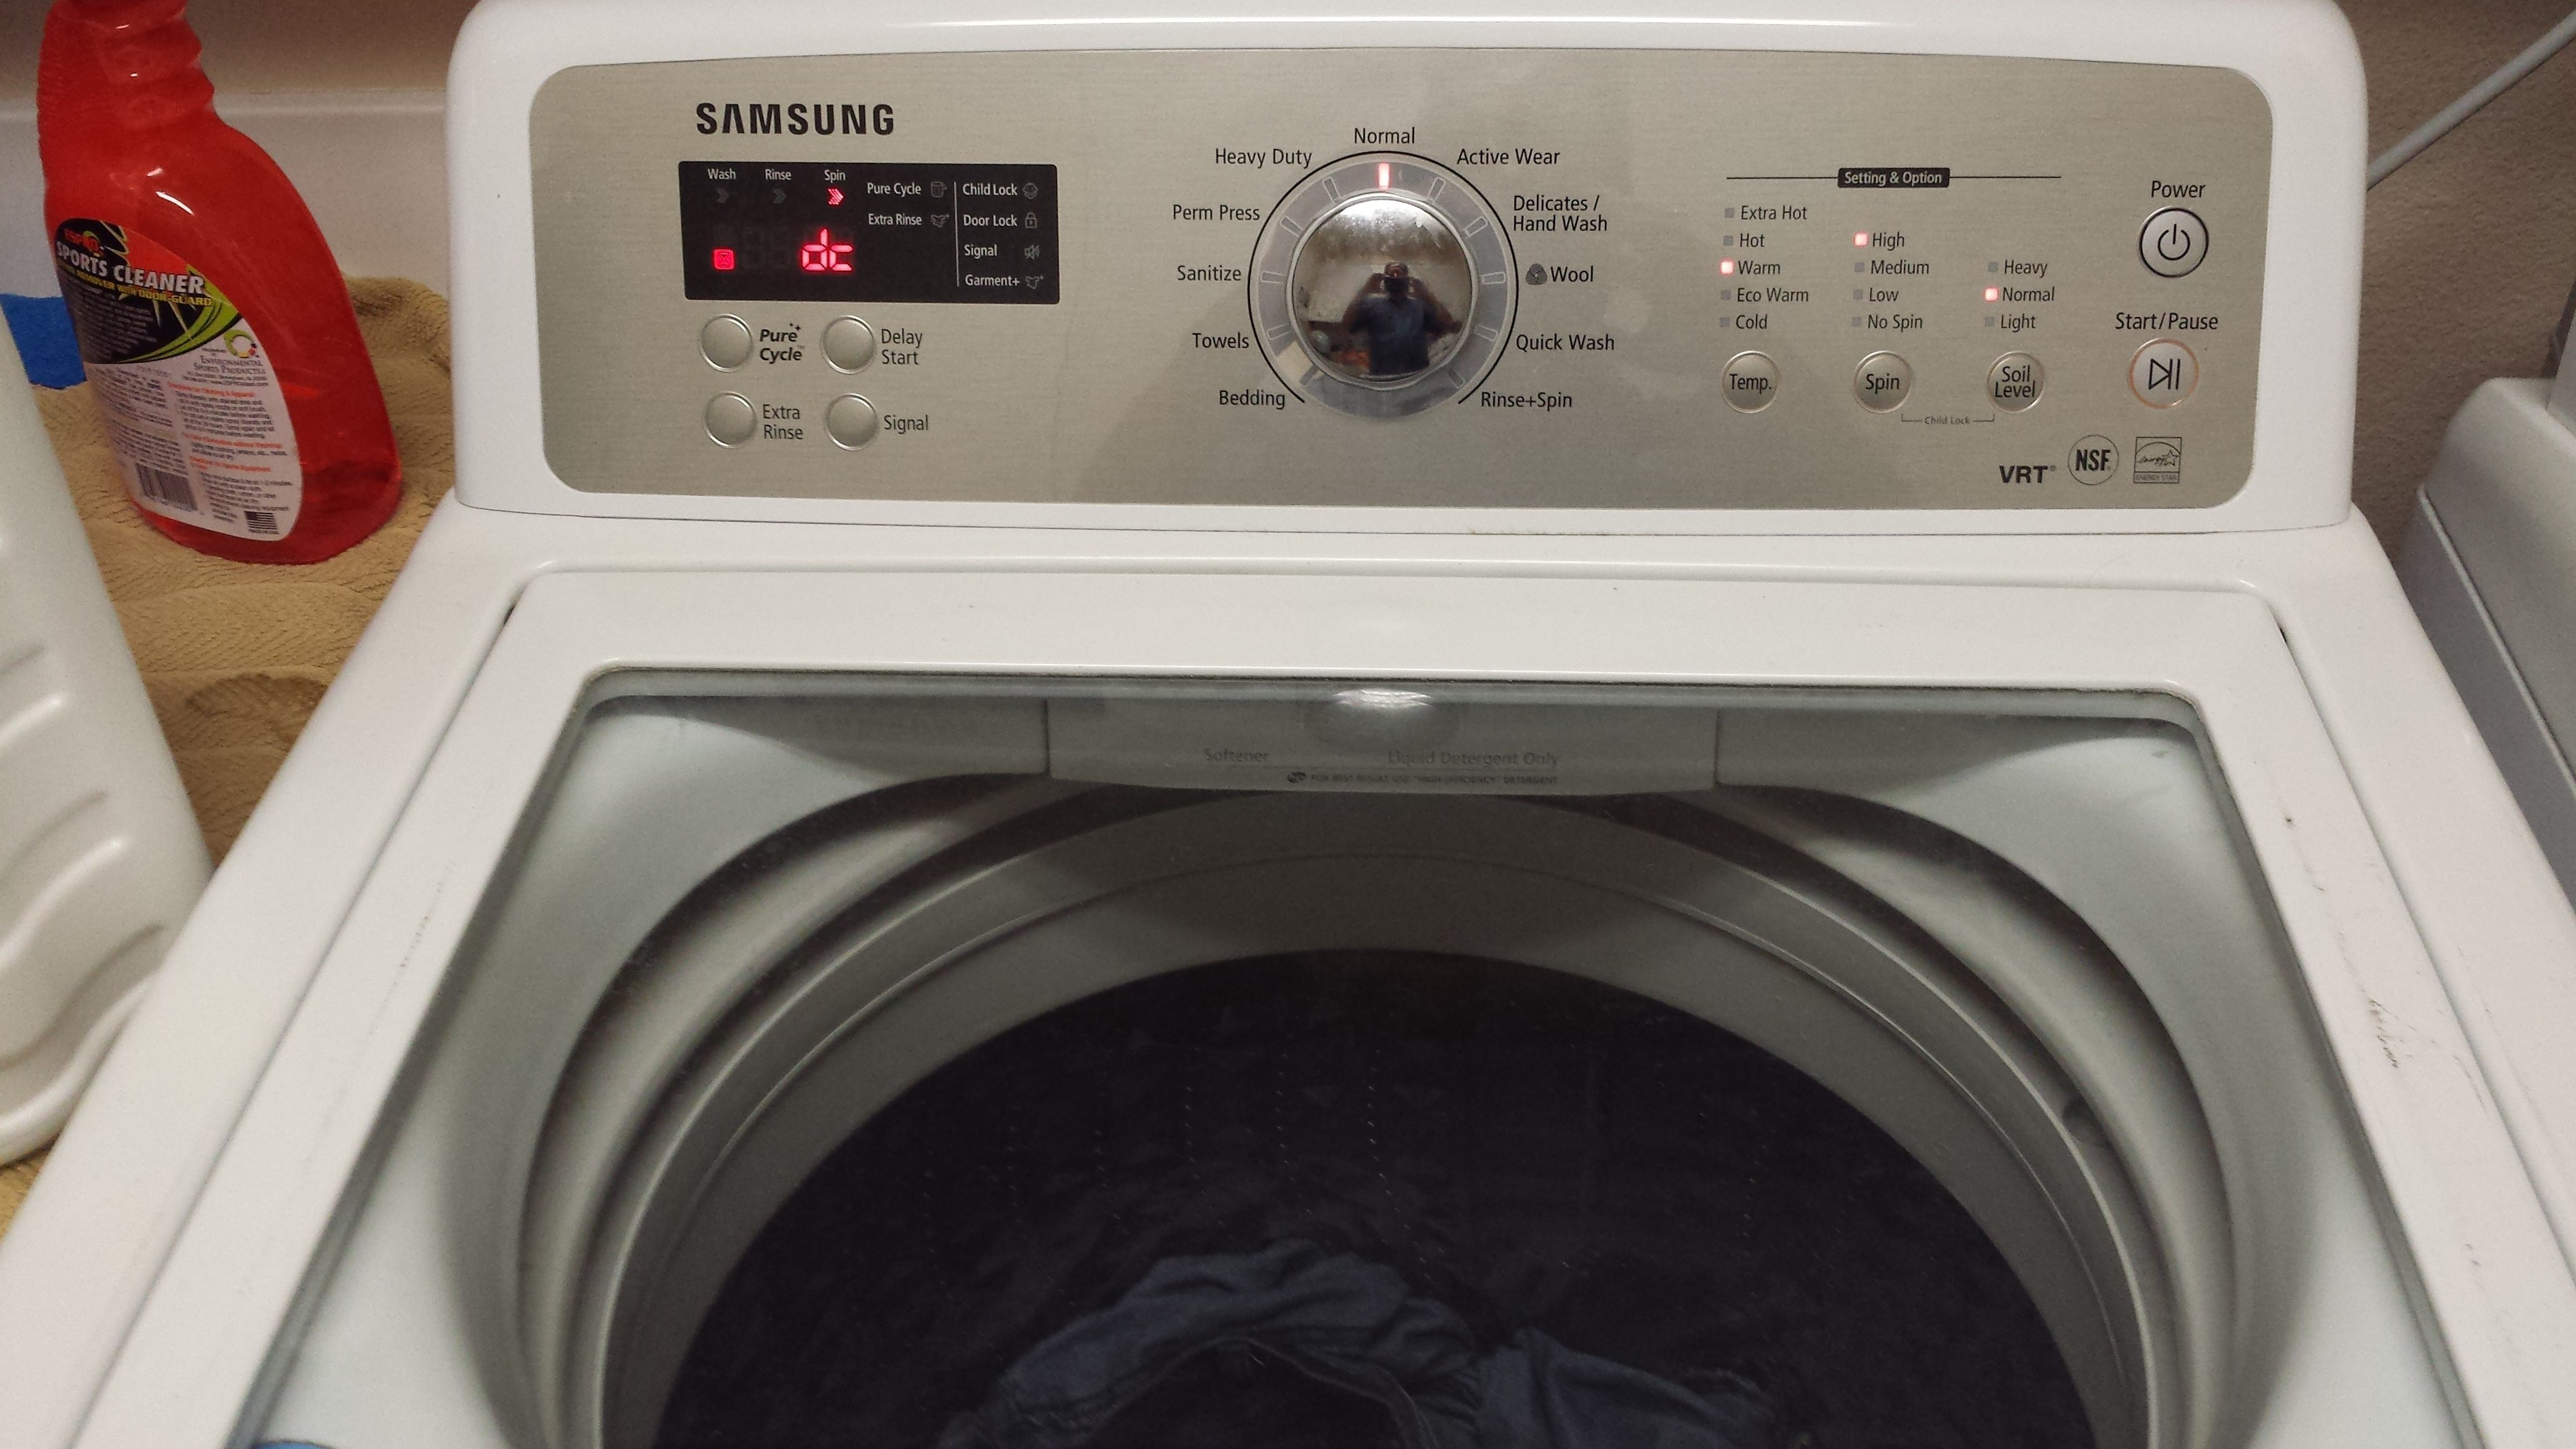 Largest Top Loading Washing Machine Top 1701 Reviews And Complaints About Samsung Washers Page 27